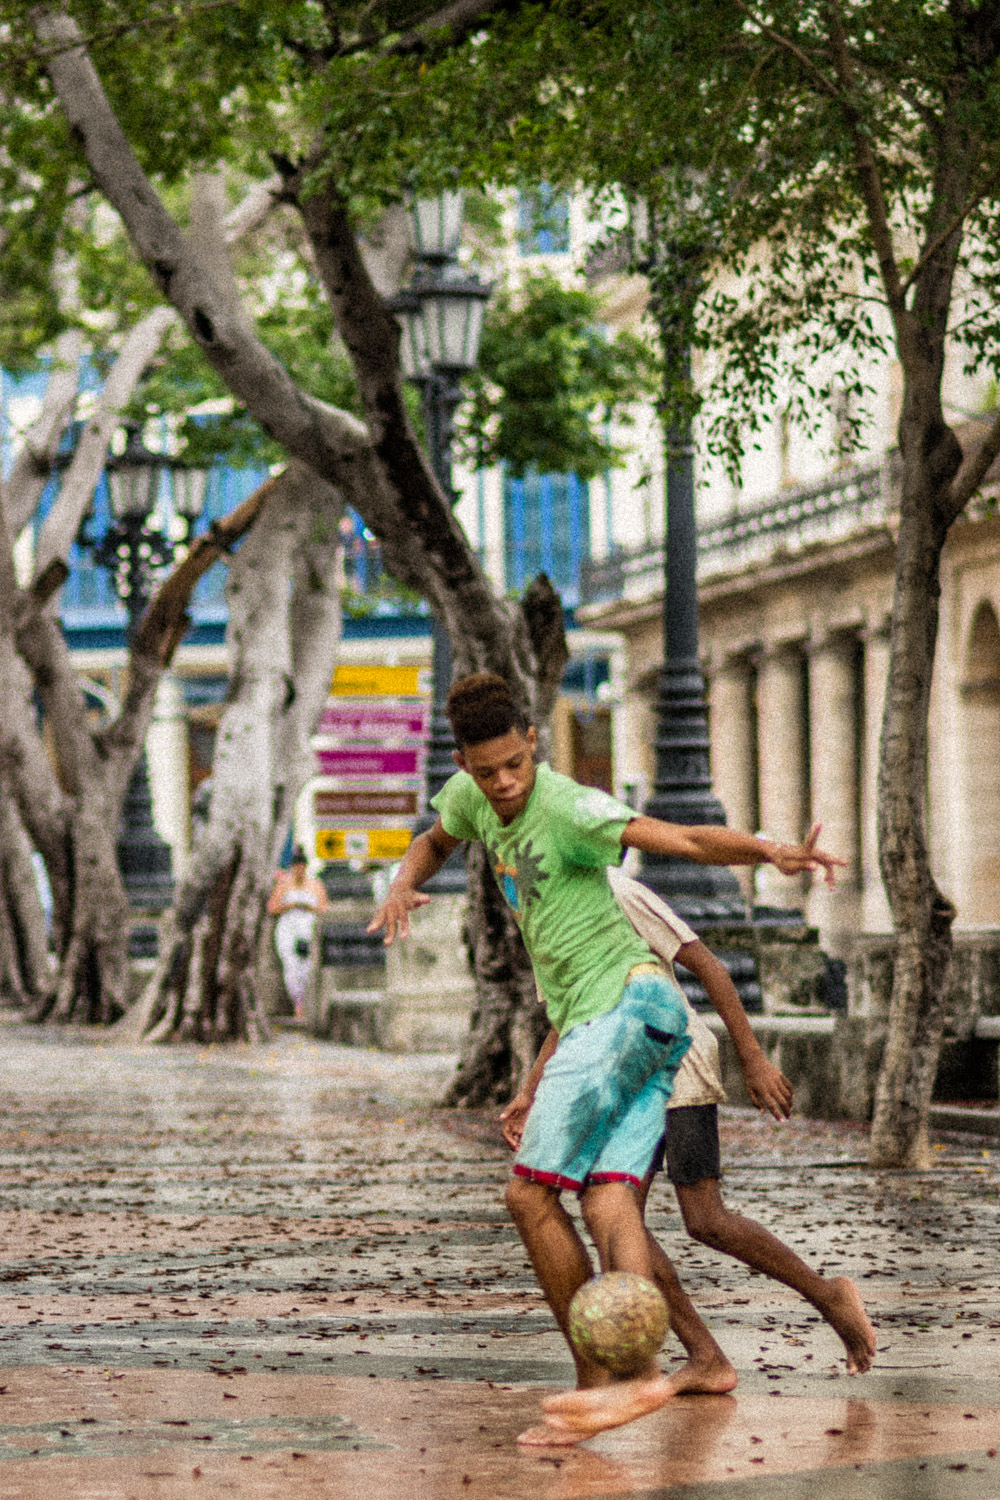 Young Football Players in Havana Cuba